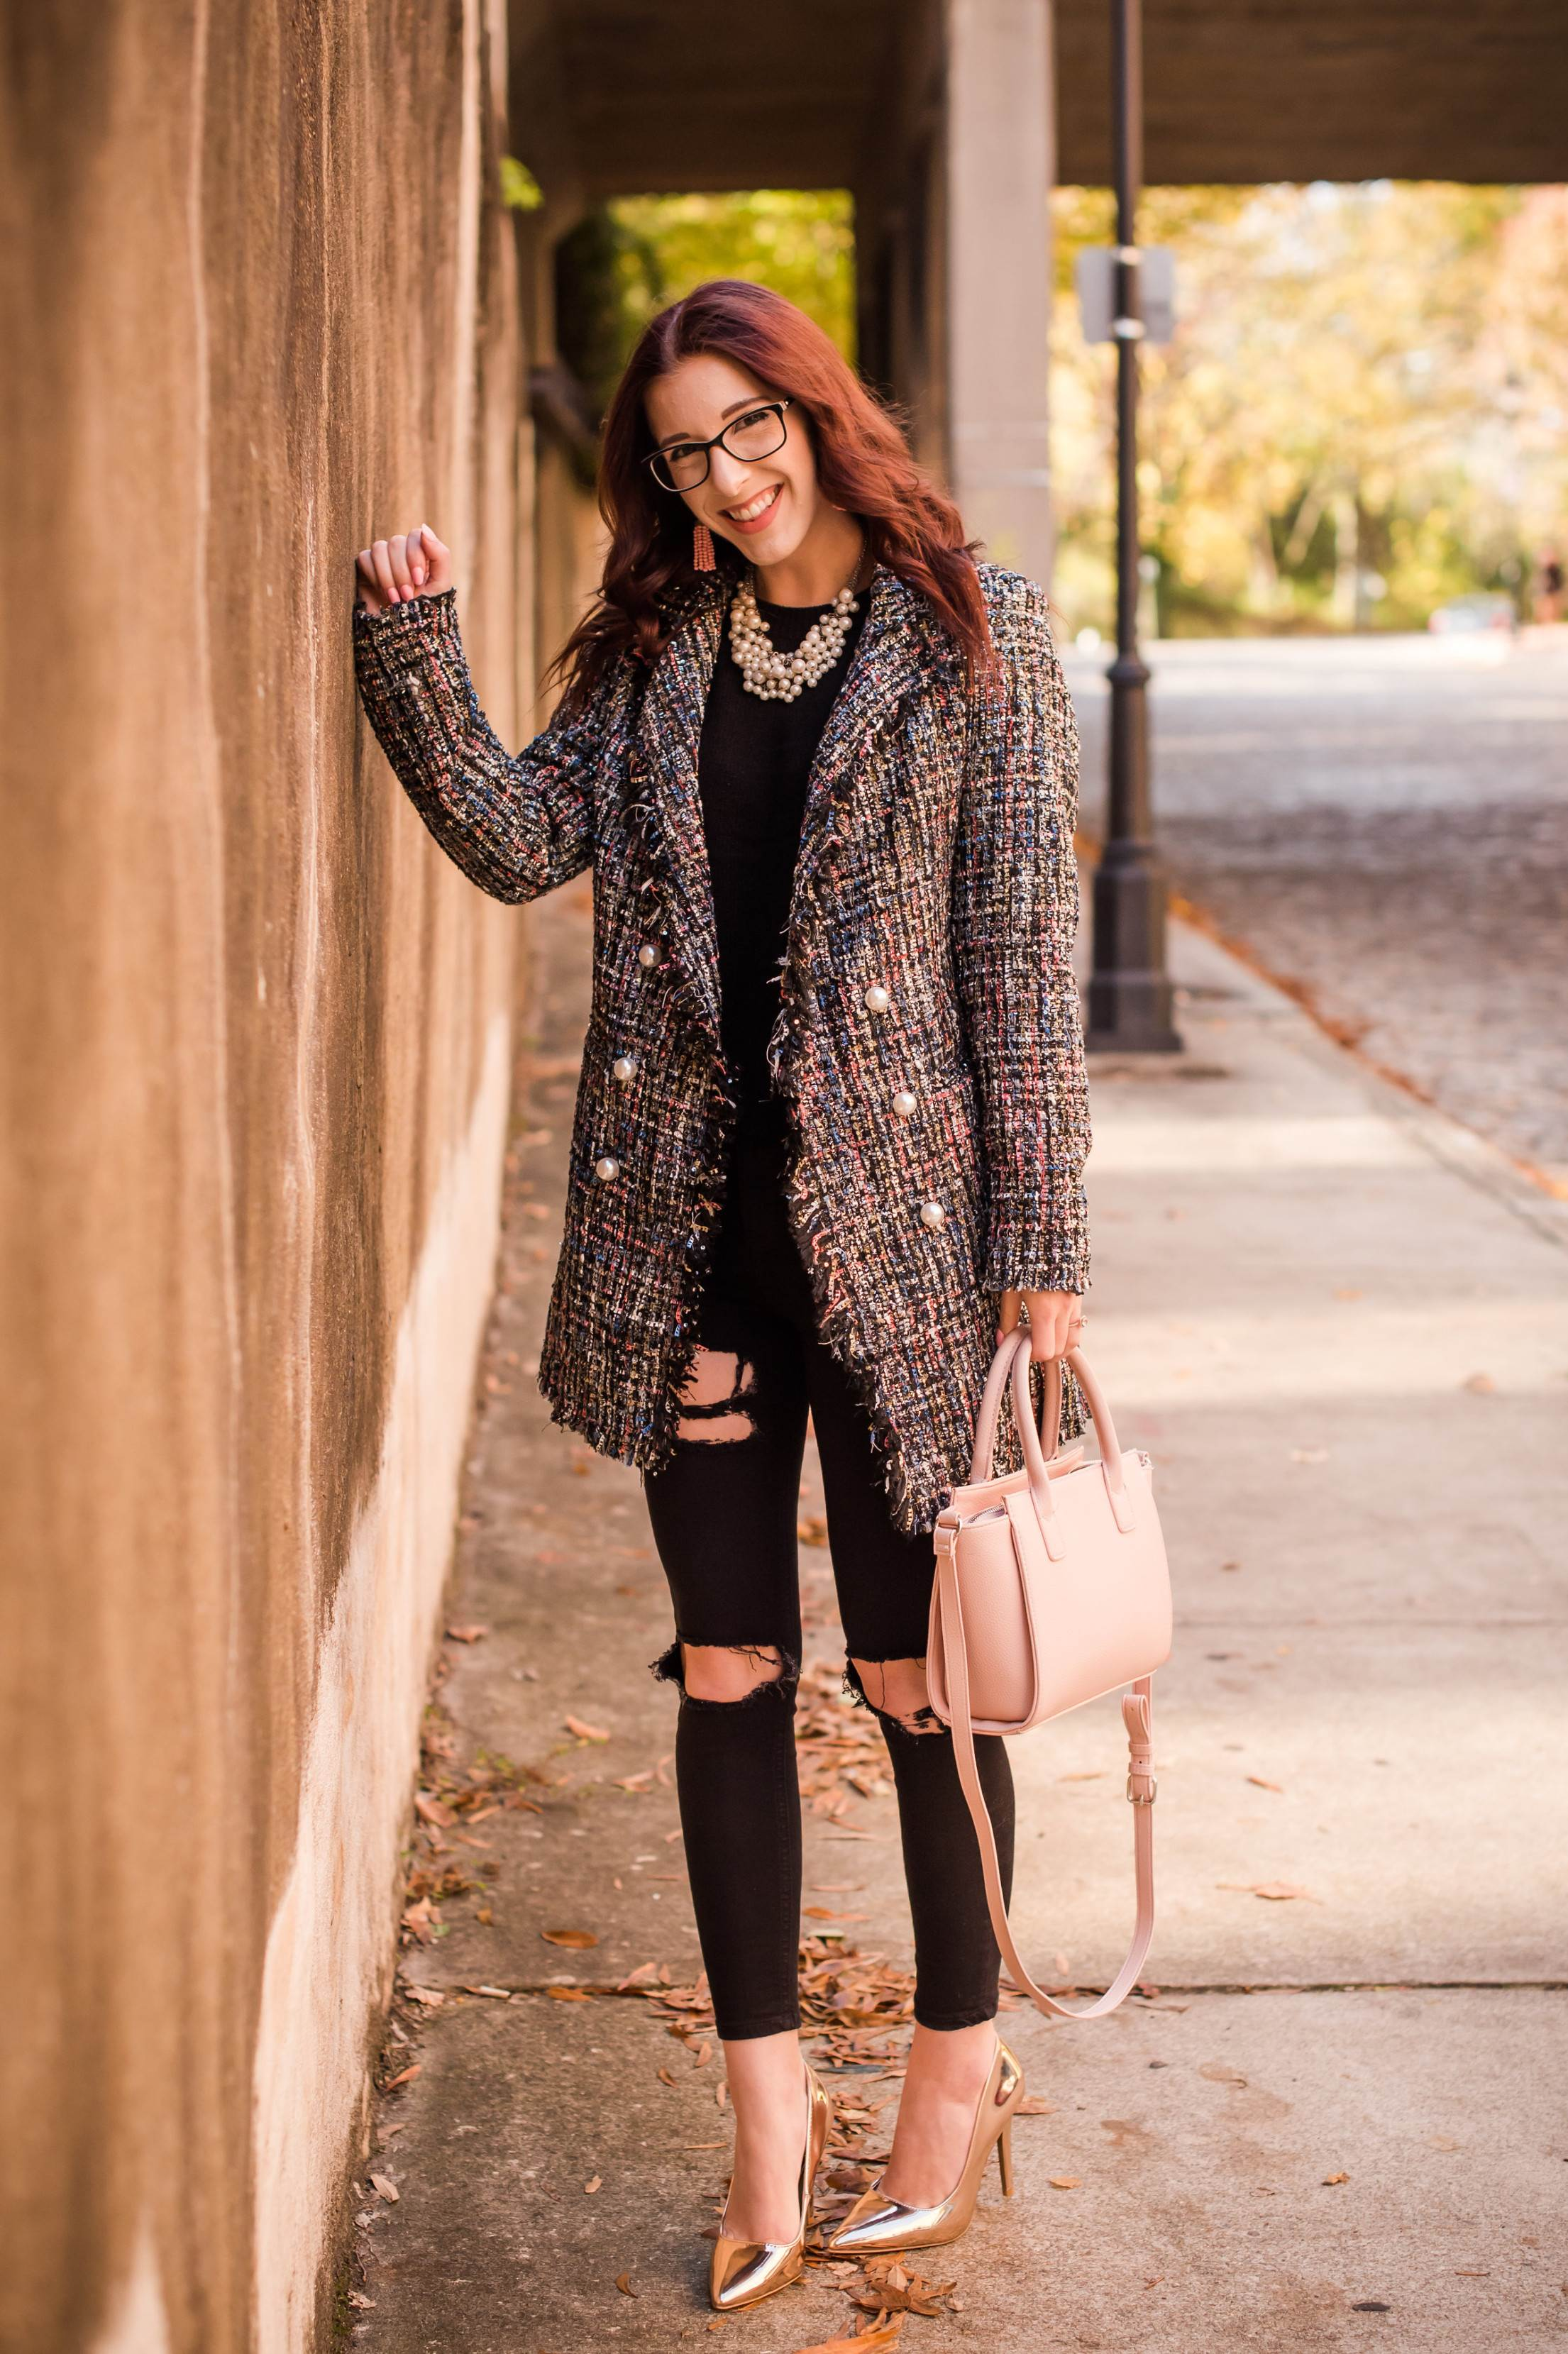 A Coat That IS The Outfit